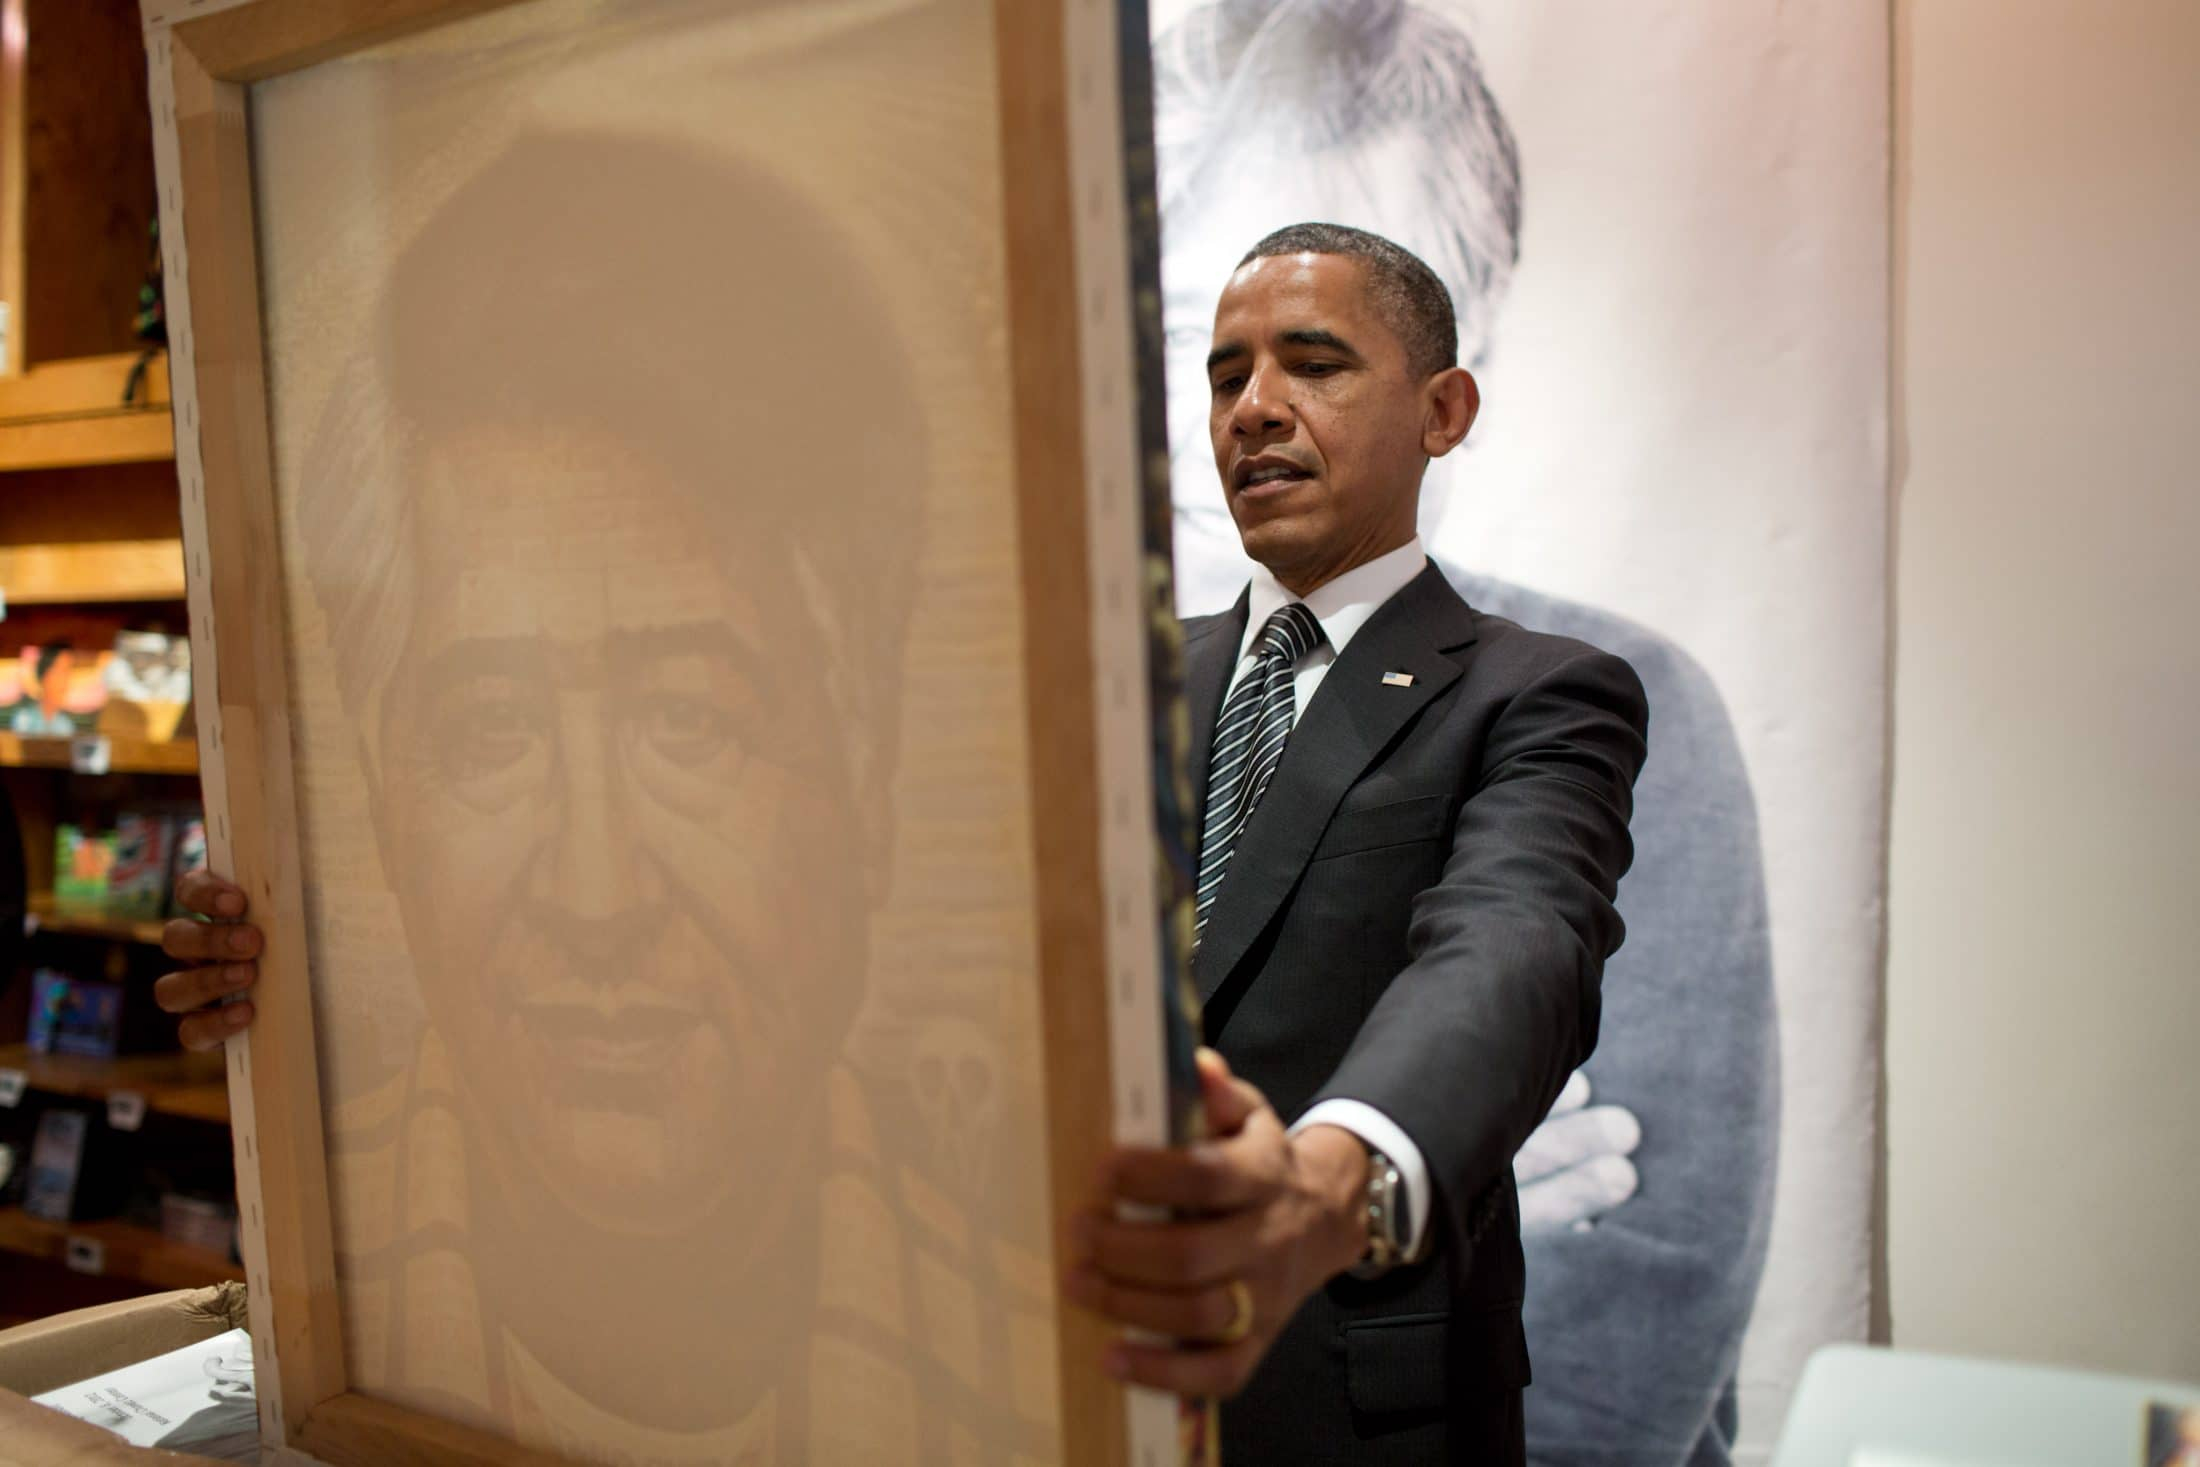 """During a 25-day fast in 1972, Chavez and Huerta coined the slogan """"Si, se puede,"""" Spanish for """"Yes, it can be done."""" Later adopted by President Obama."""